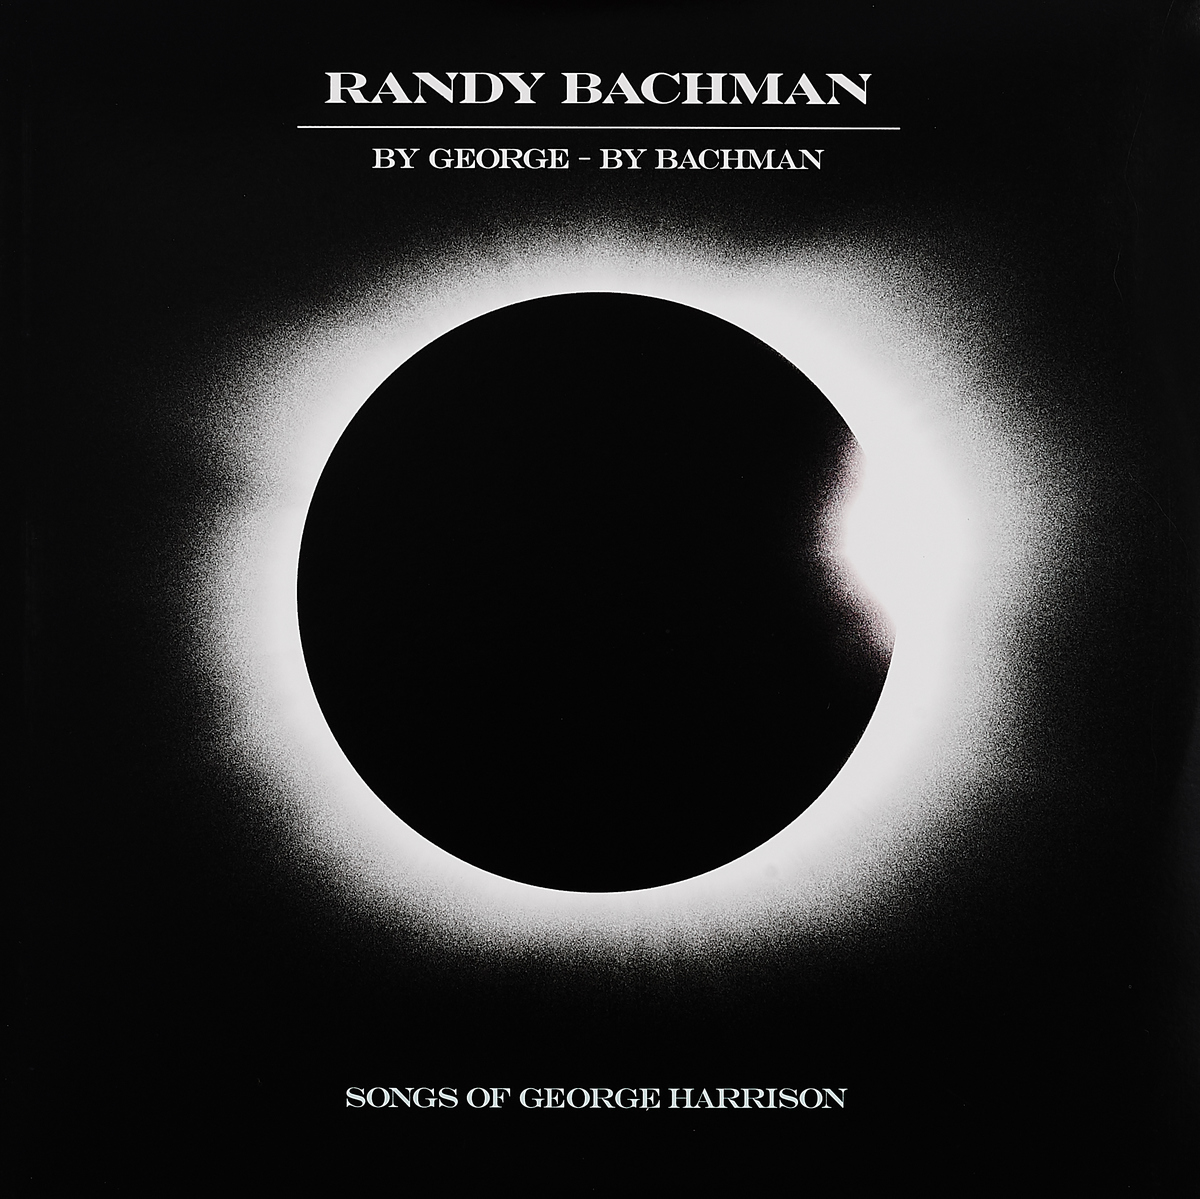 Ренди Бачман Randy Bachman. By George By Bachman (2 LP) randy newman randy newman the randy newman songbook 4 lp